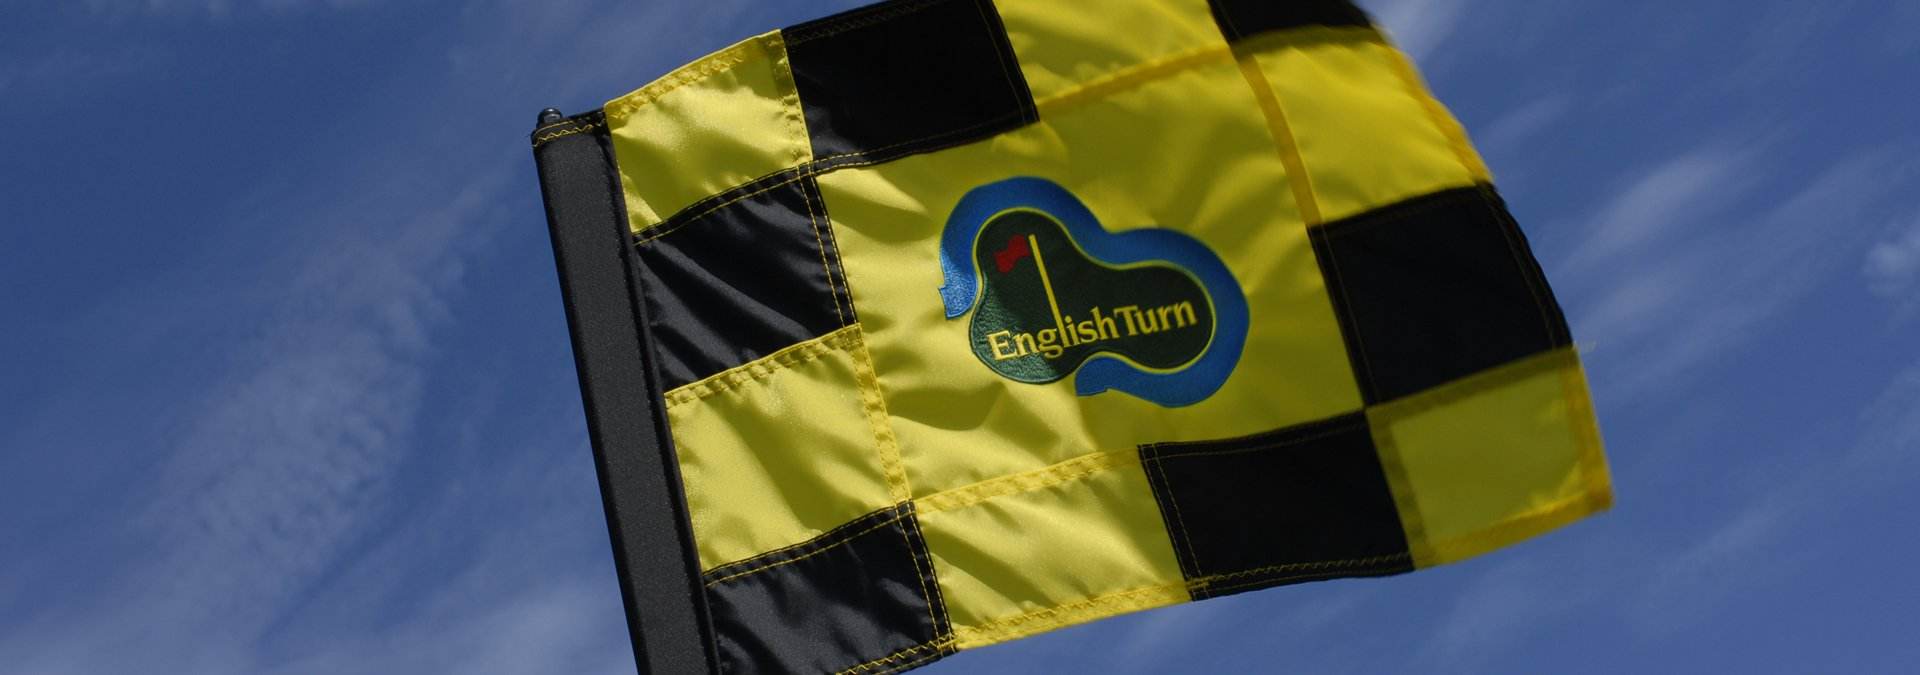 English Turn packages with Little RIver Bluffs